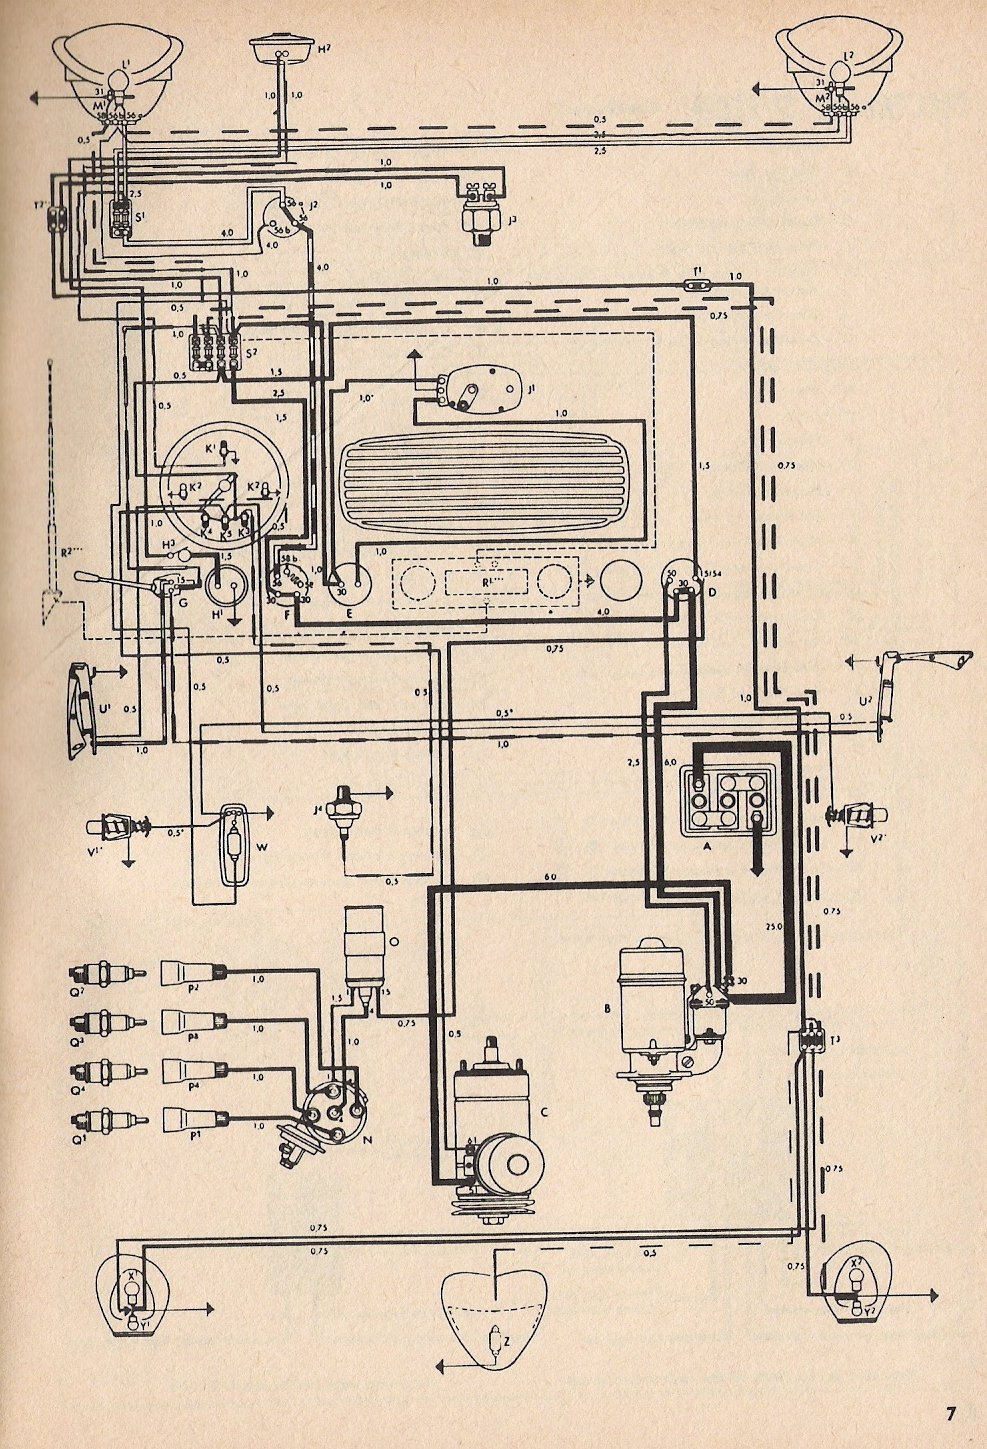 bug_54 vw wiring harness diagram cj7 wiring harness diagram \u2022 wiring Wiring Harness Diagram at metegol.co